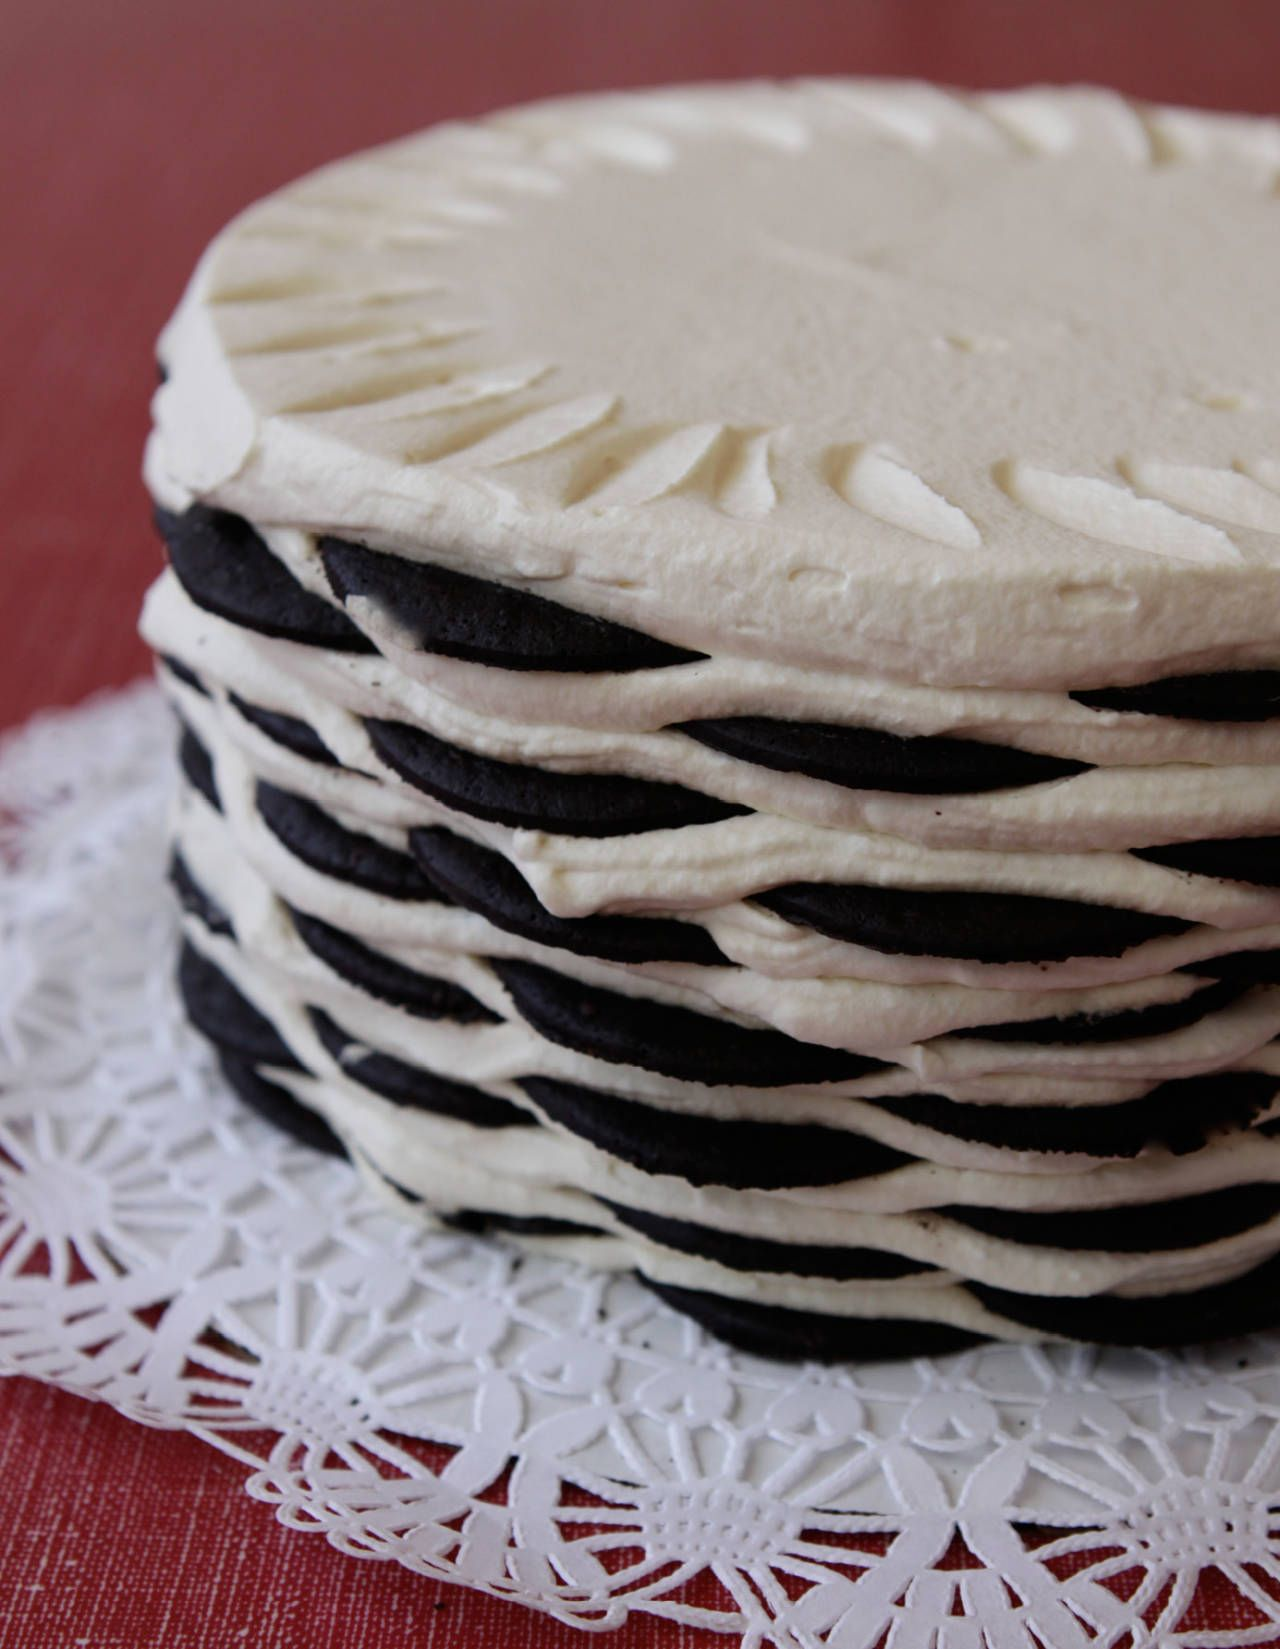 12 todiefor cakes in new york city icebox cake nyc